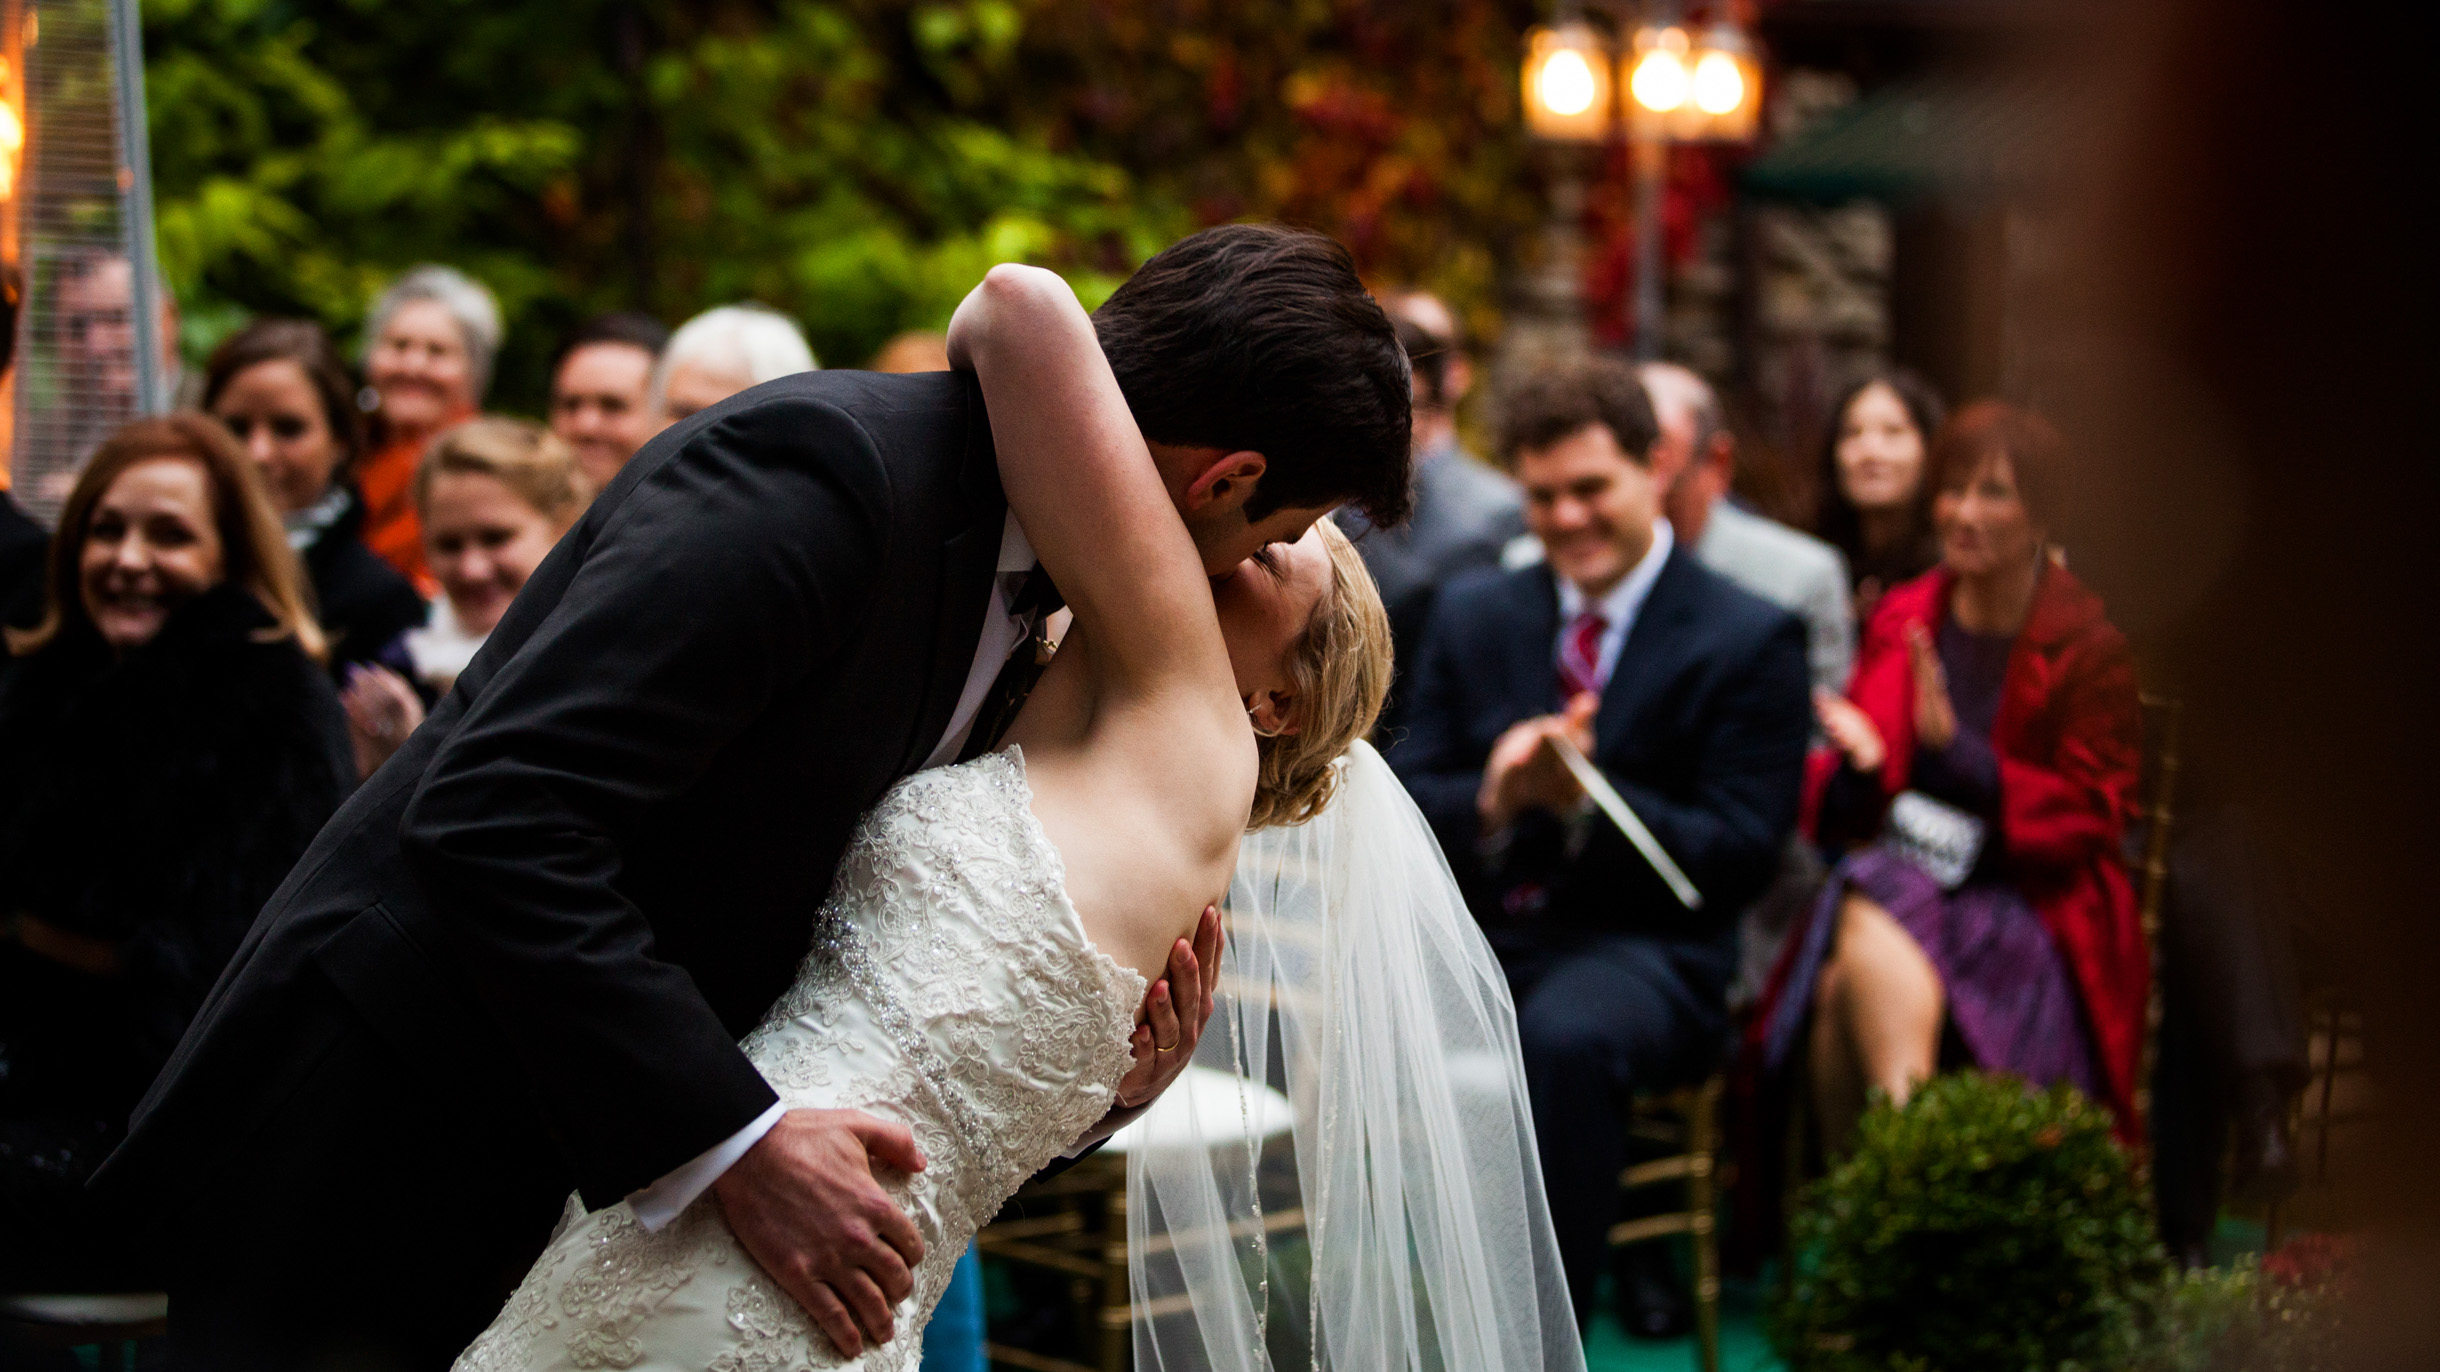 Groom dipping bride in dramatic kiss after their outdoor wedding ceremony